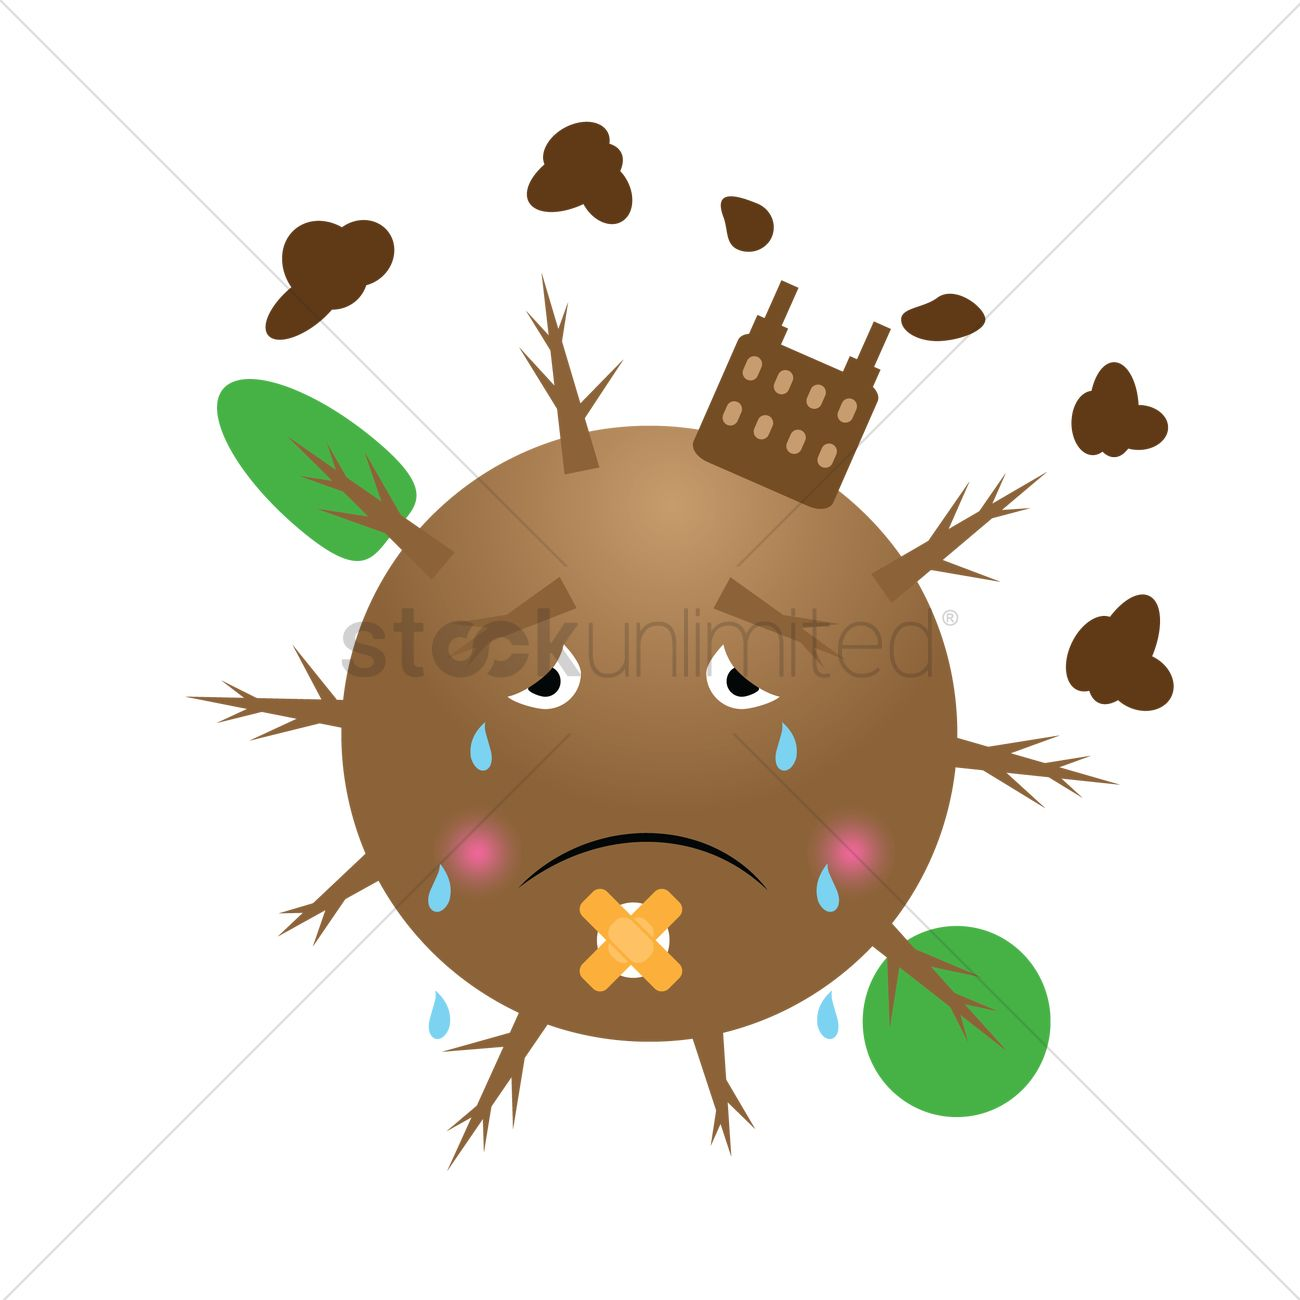 Crying earth clipart transparent stock Crying earth due to pollution Vector Image - 1302662 ... transparent stock